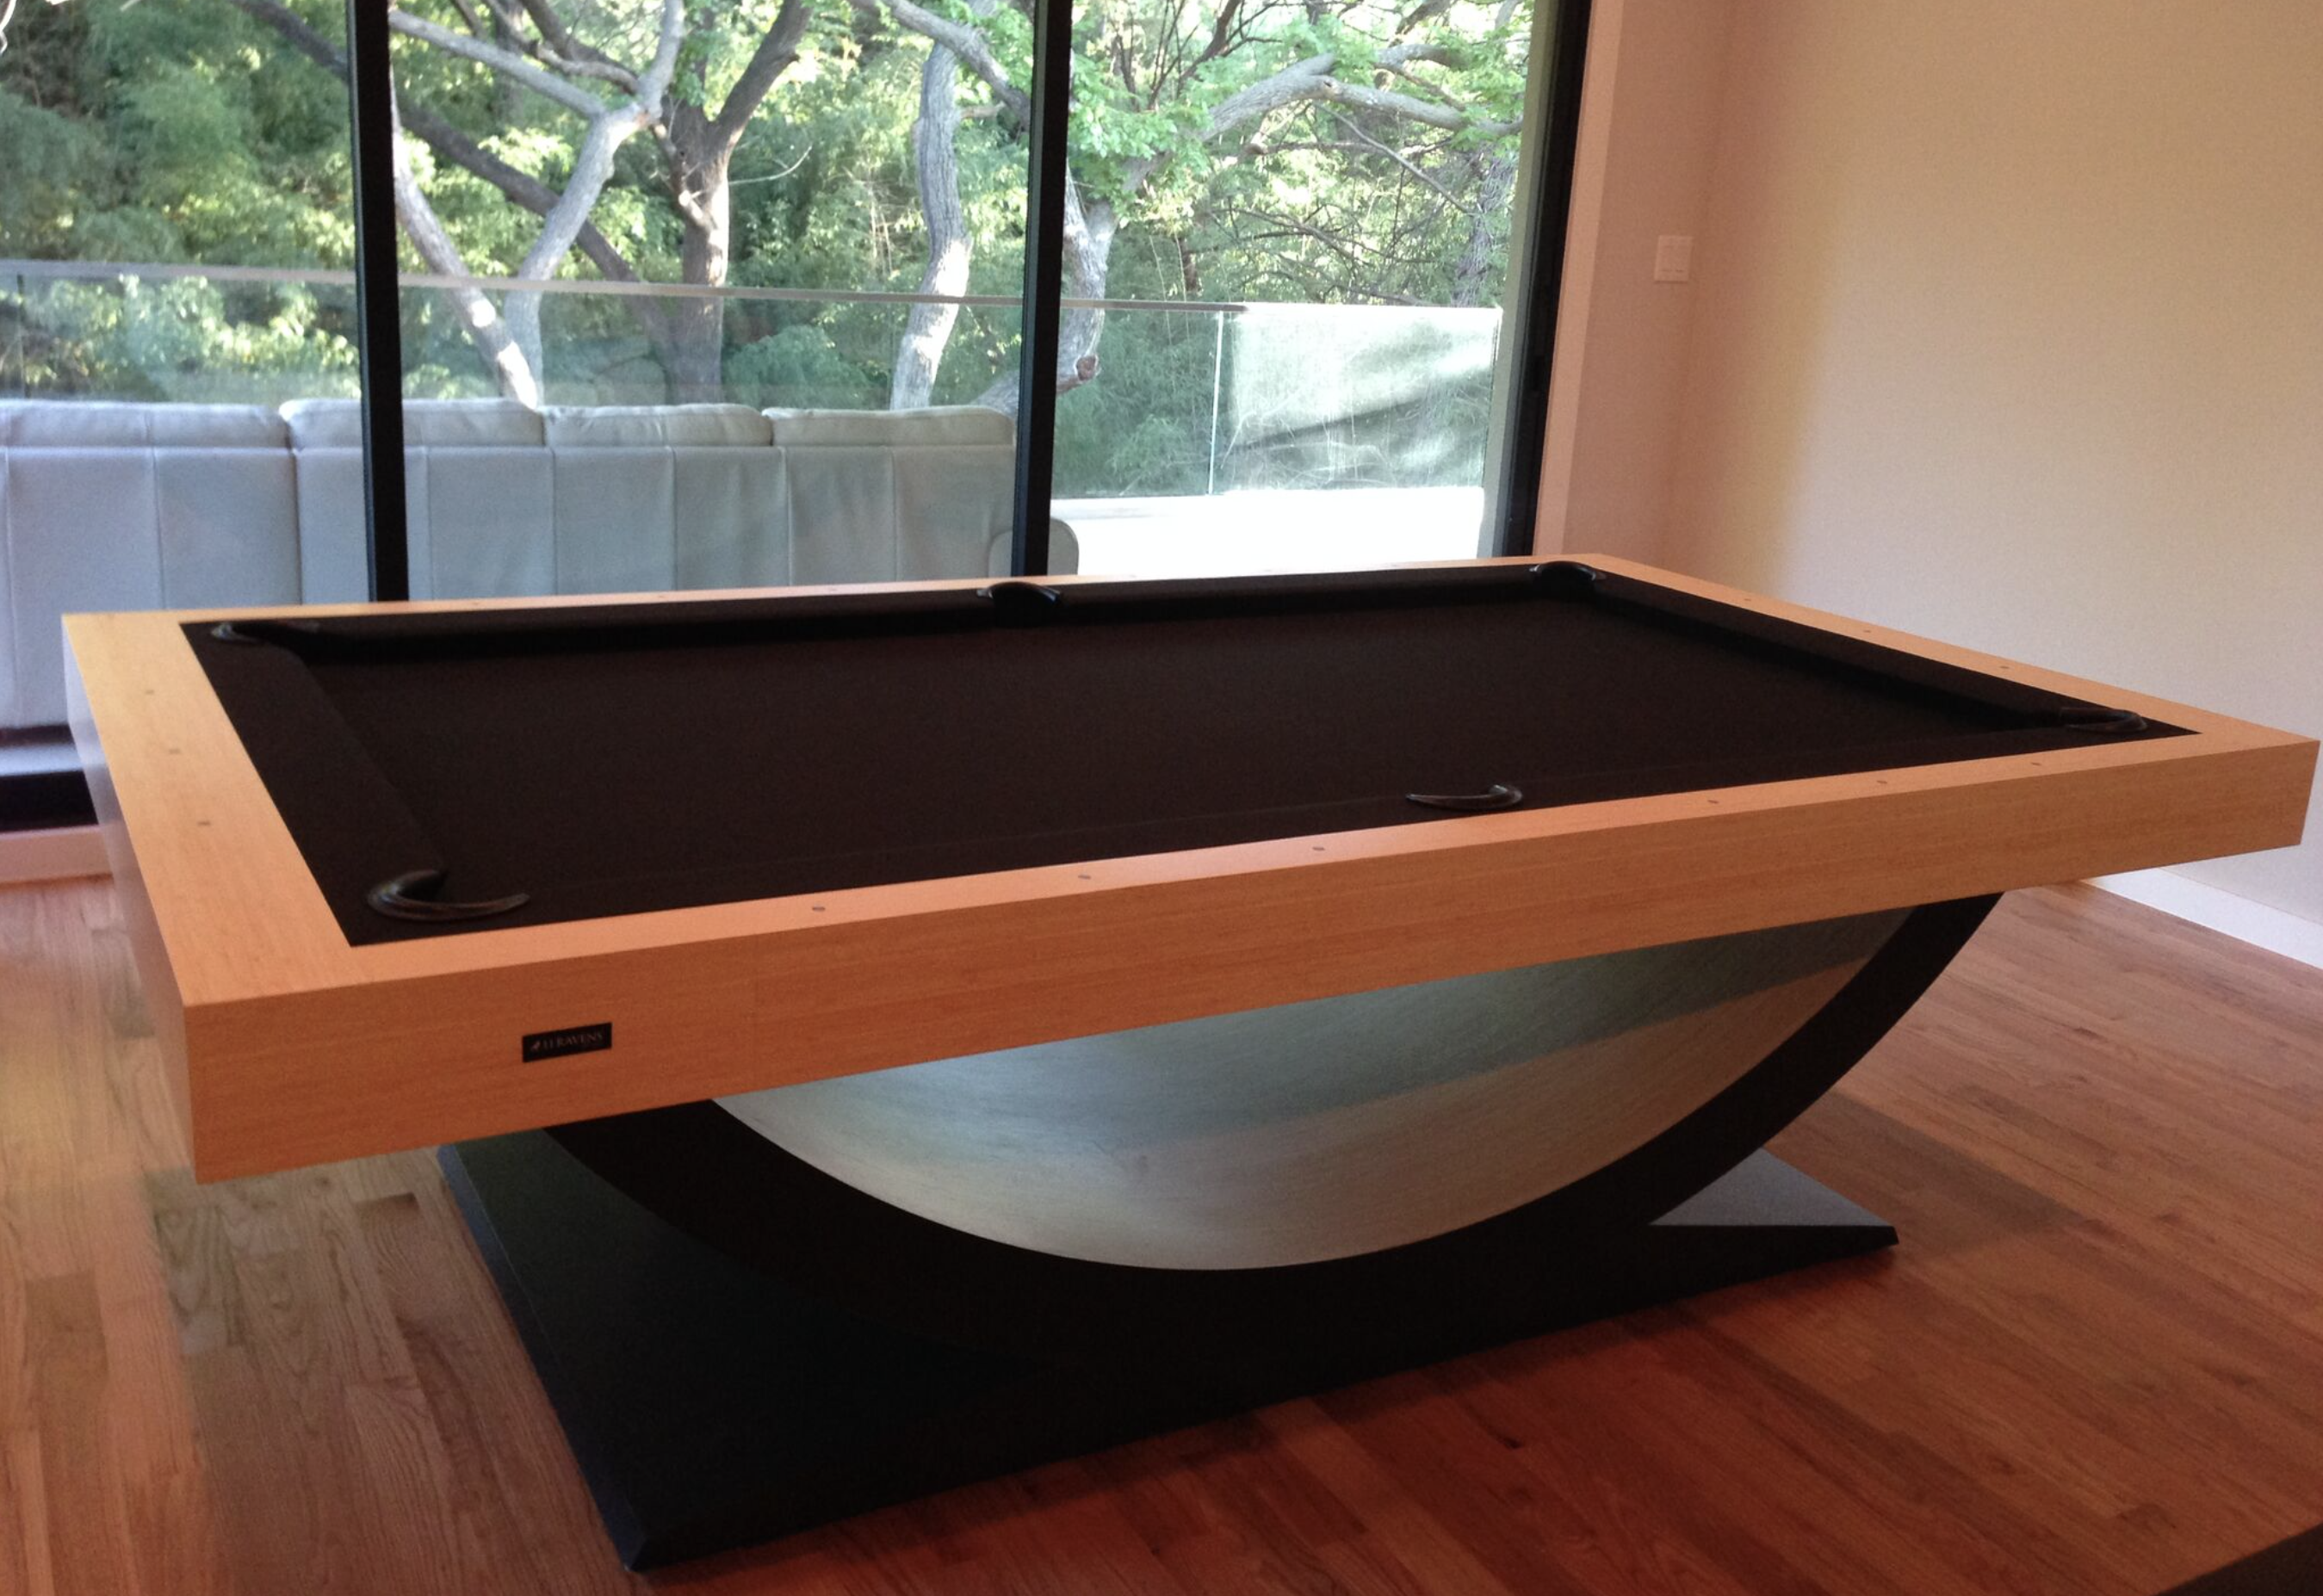 Theseus Billiards Table Luxury Modern Pool Tables The Most Exquisite Table Tennis Billiards Tables Modern Pool Table Billiard Table Billiards